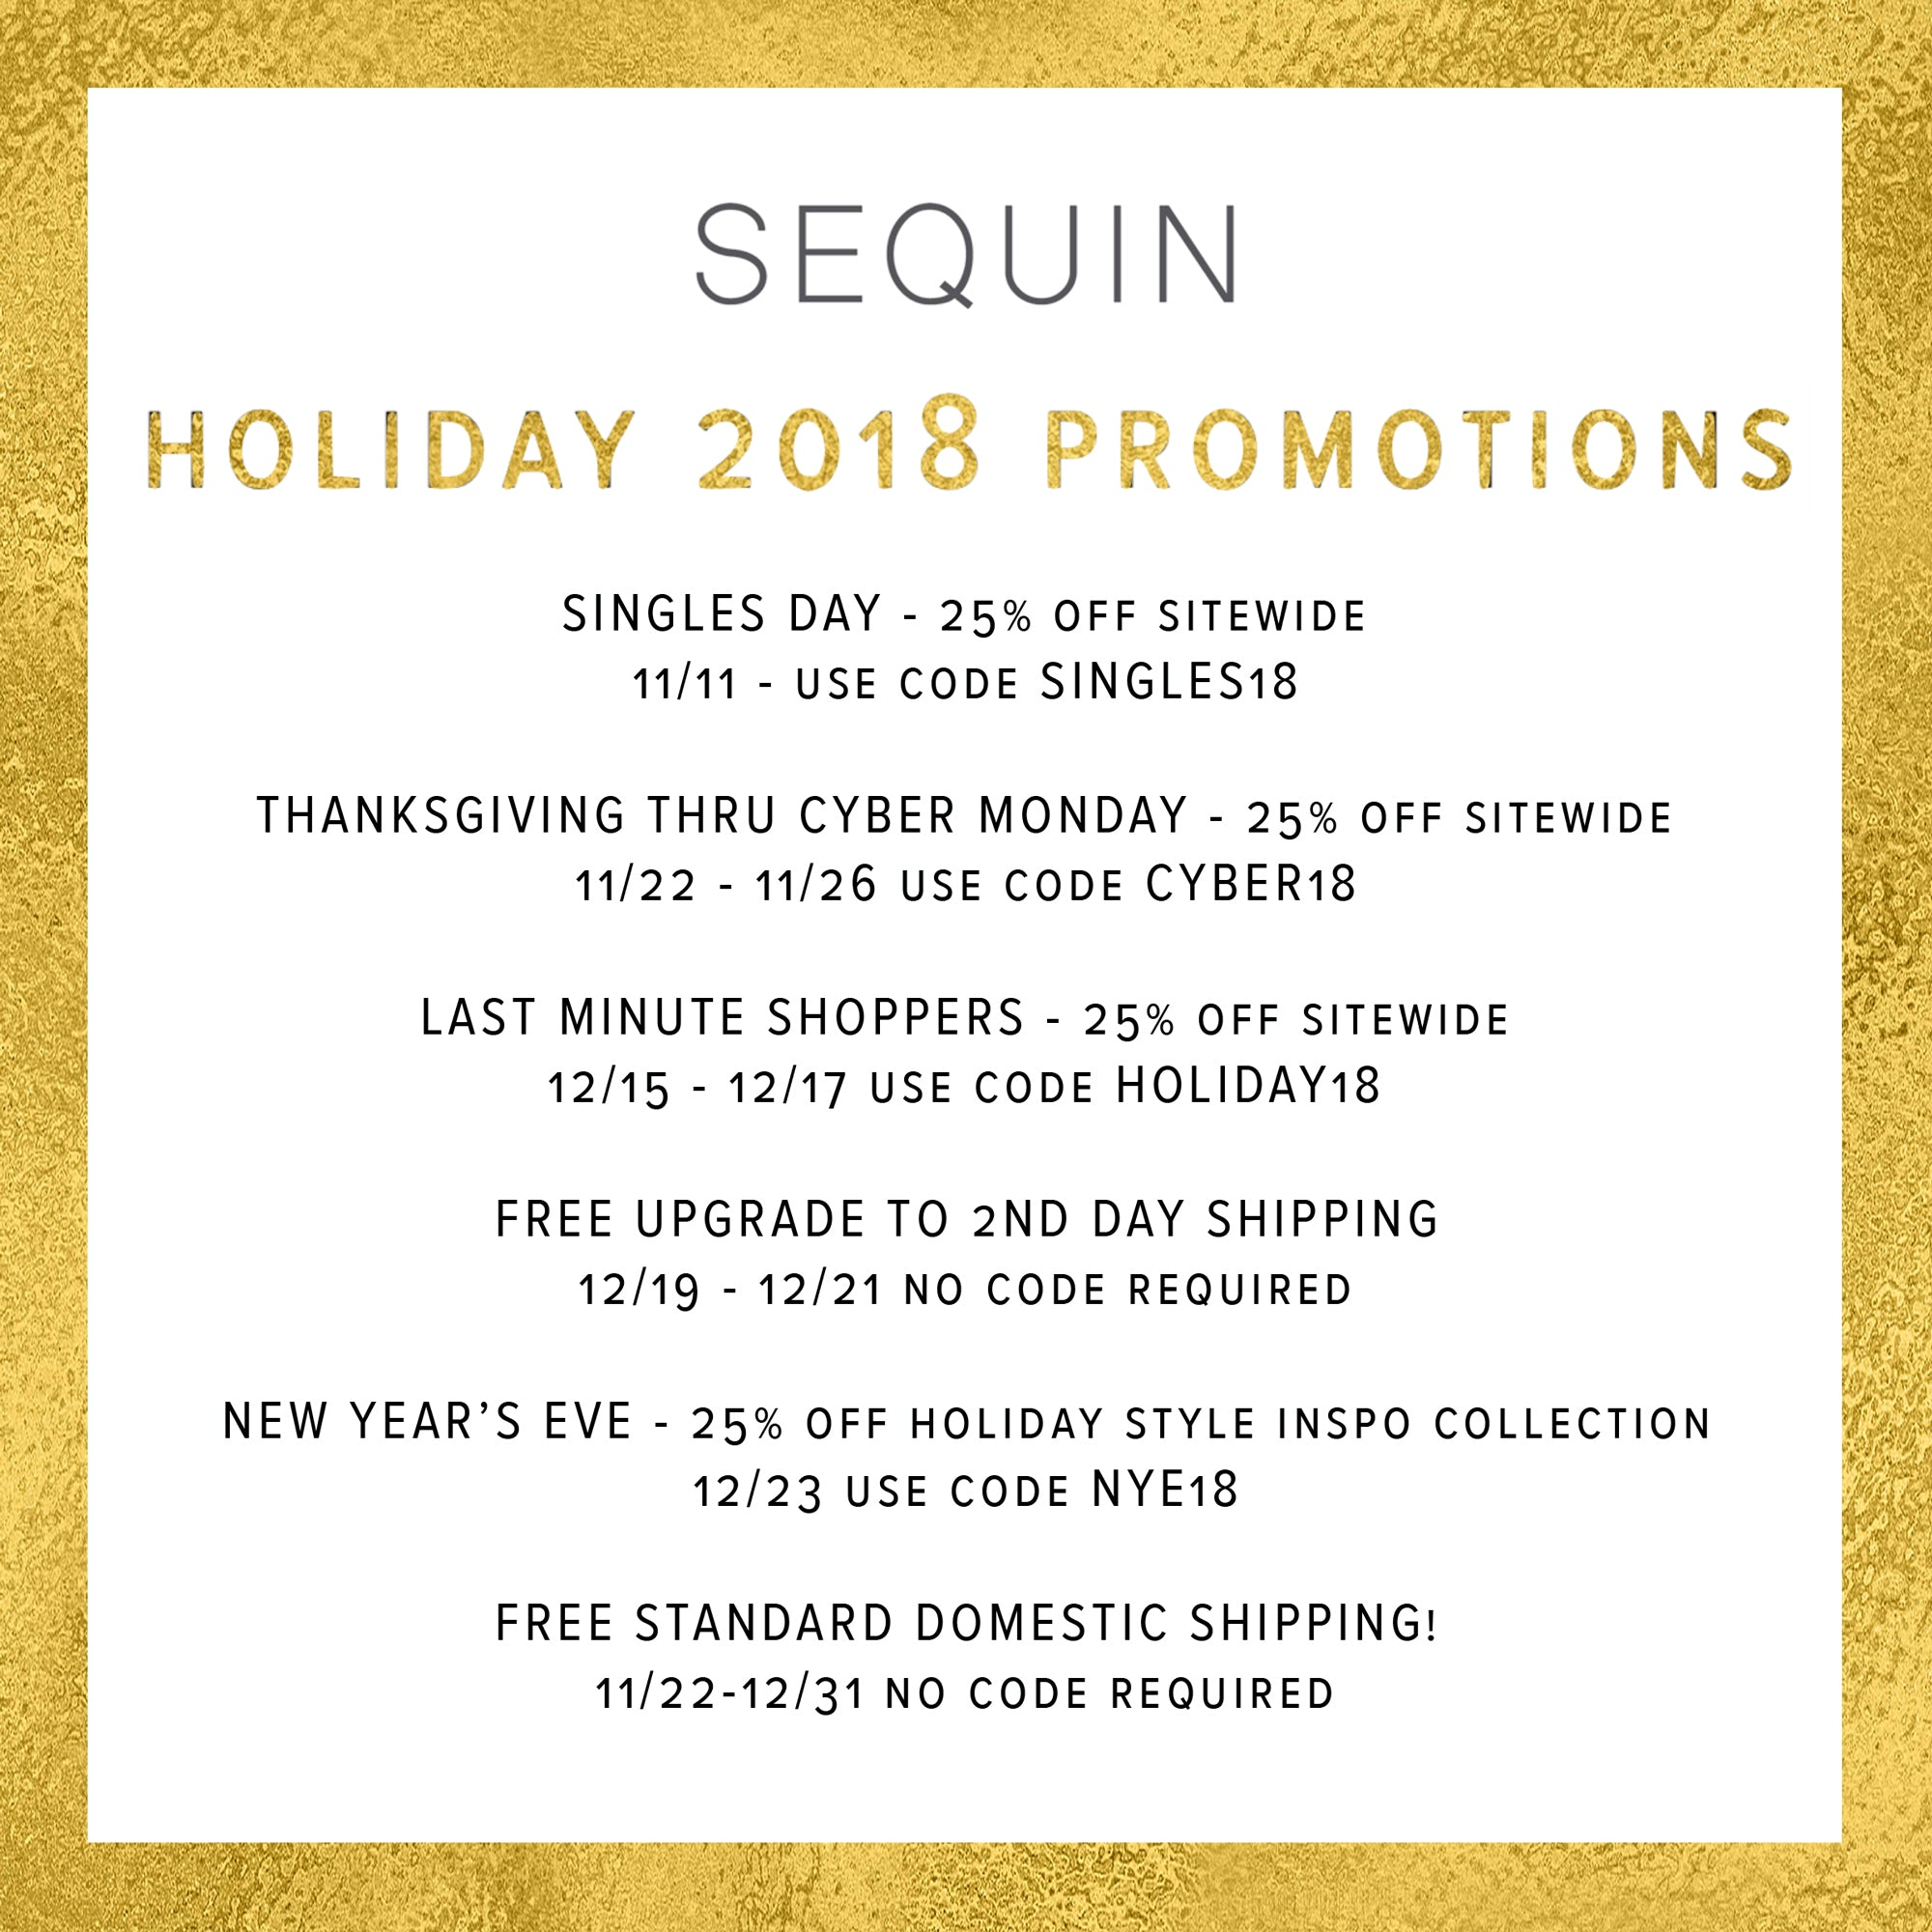 Sequin Holiday 2018 Promotions